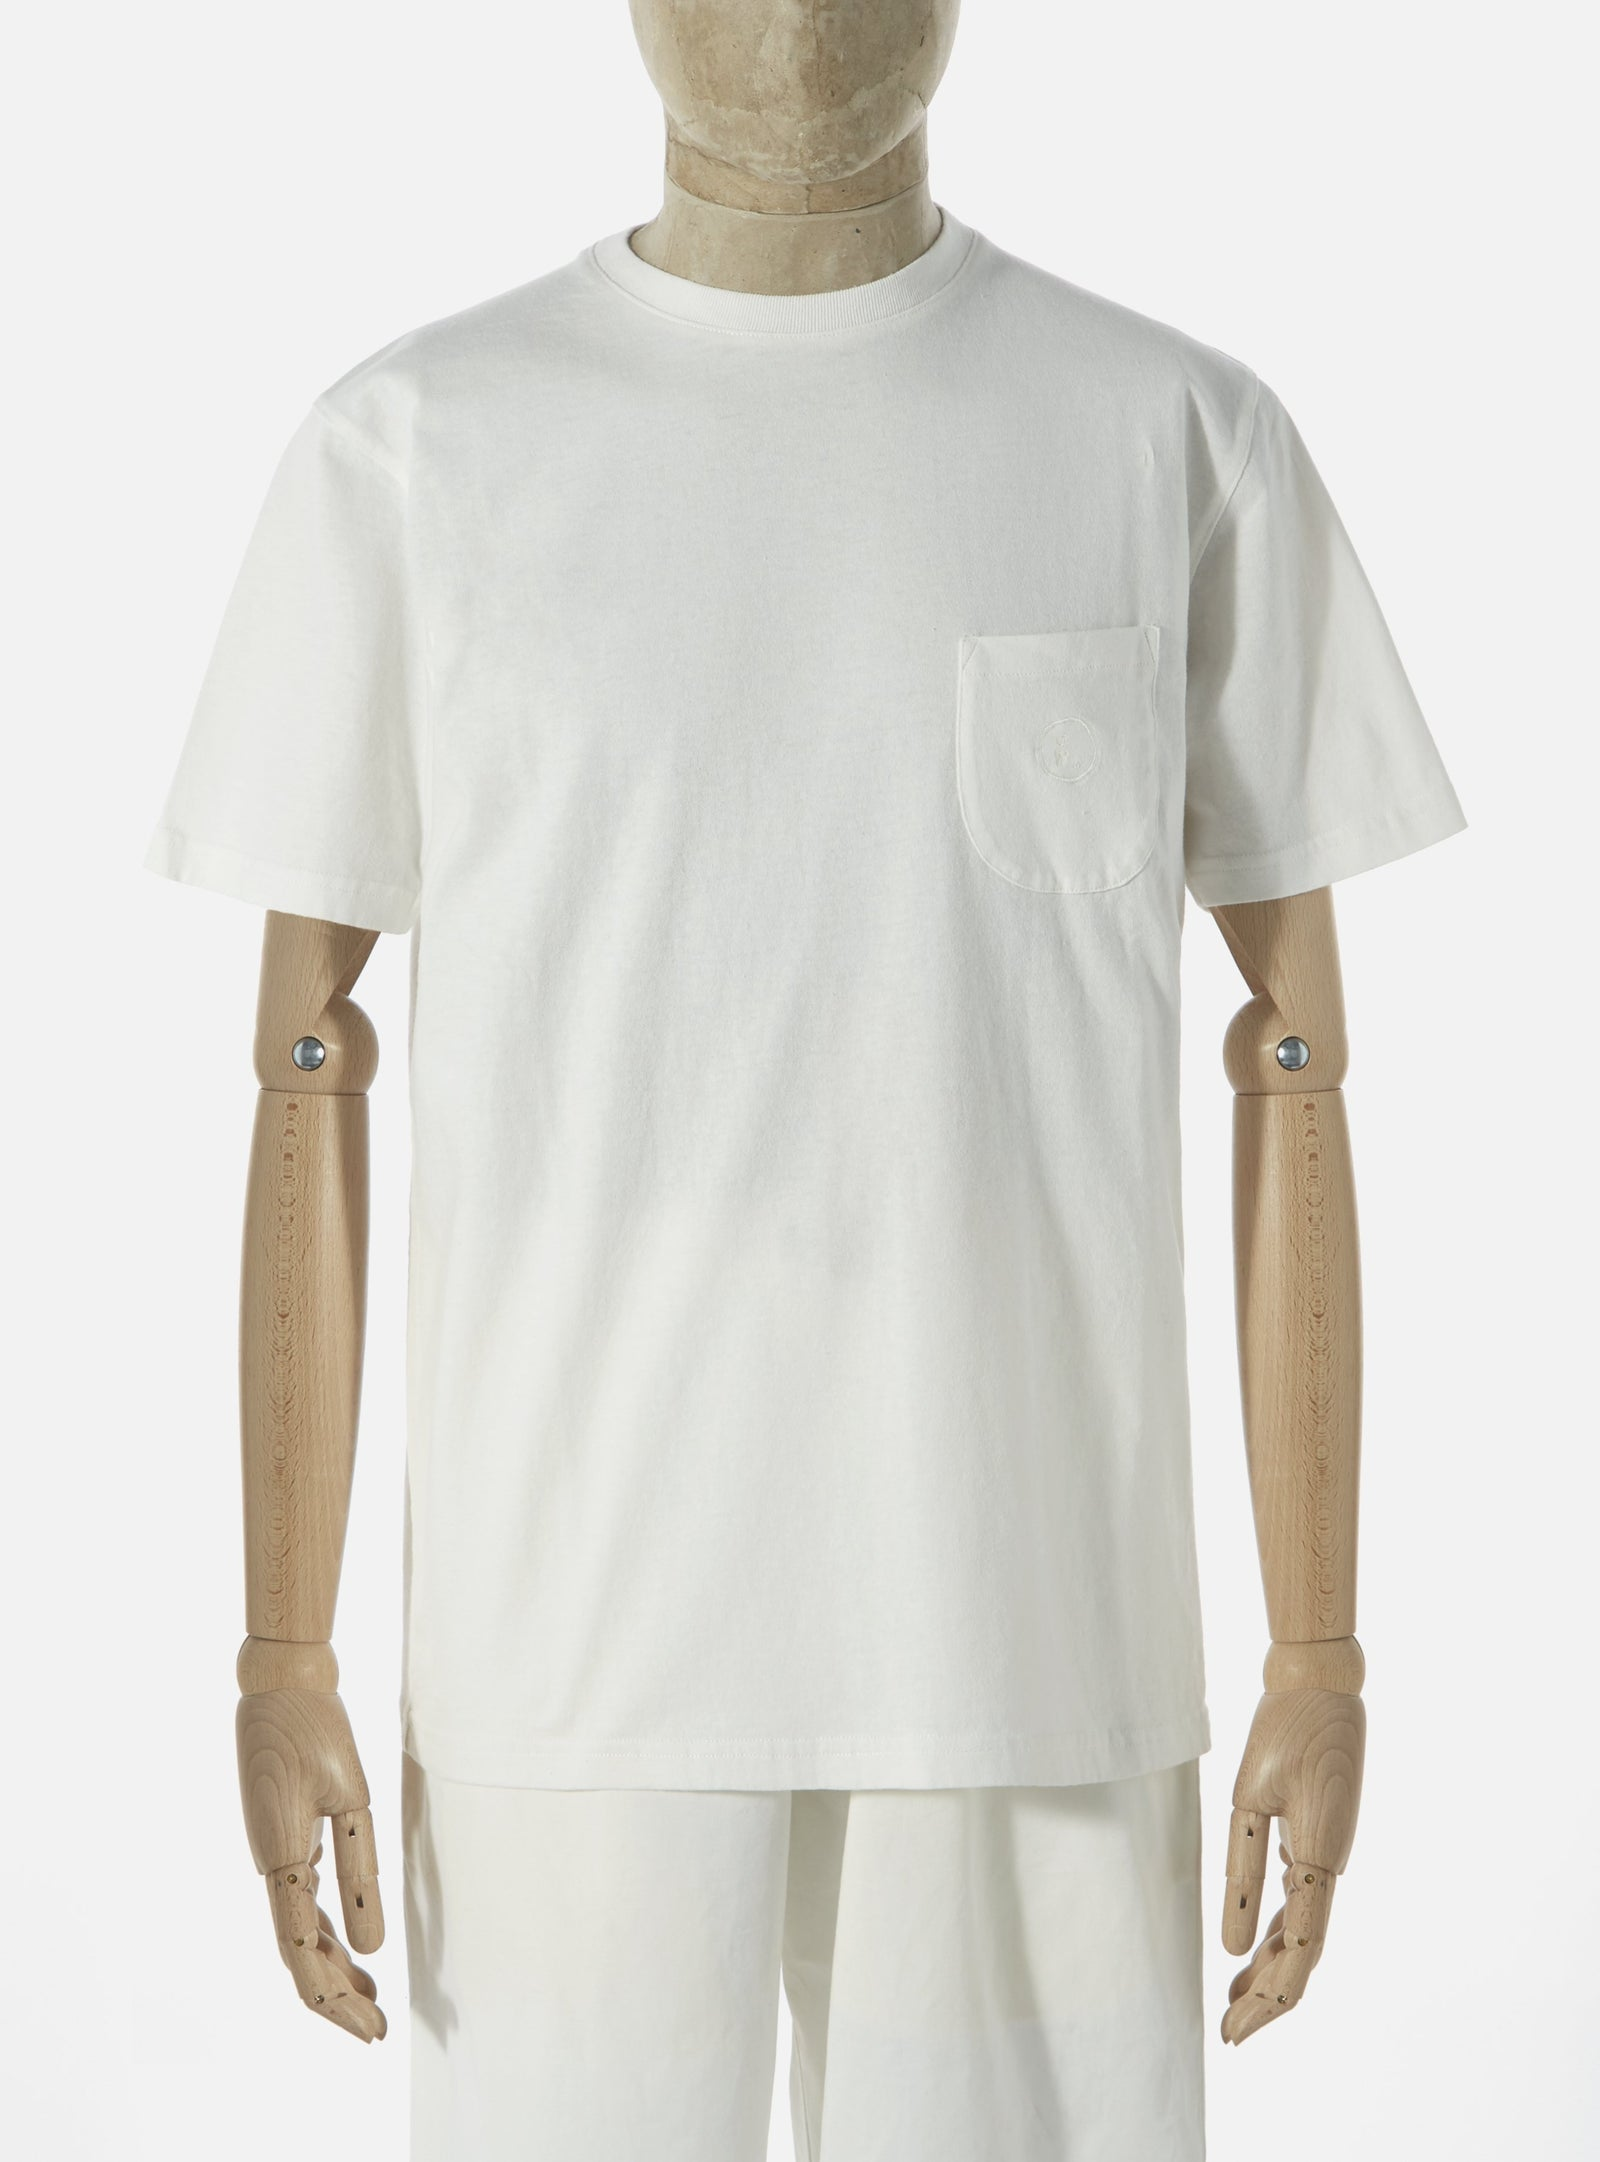 Universal Works 'Save That Jersey' Embroidered Pocket Tee in Ecru